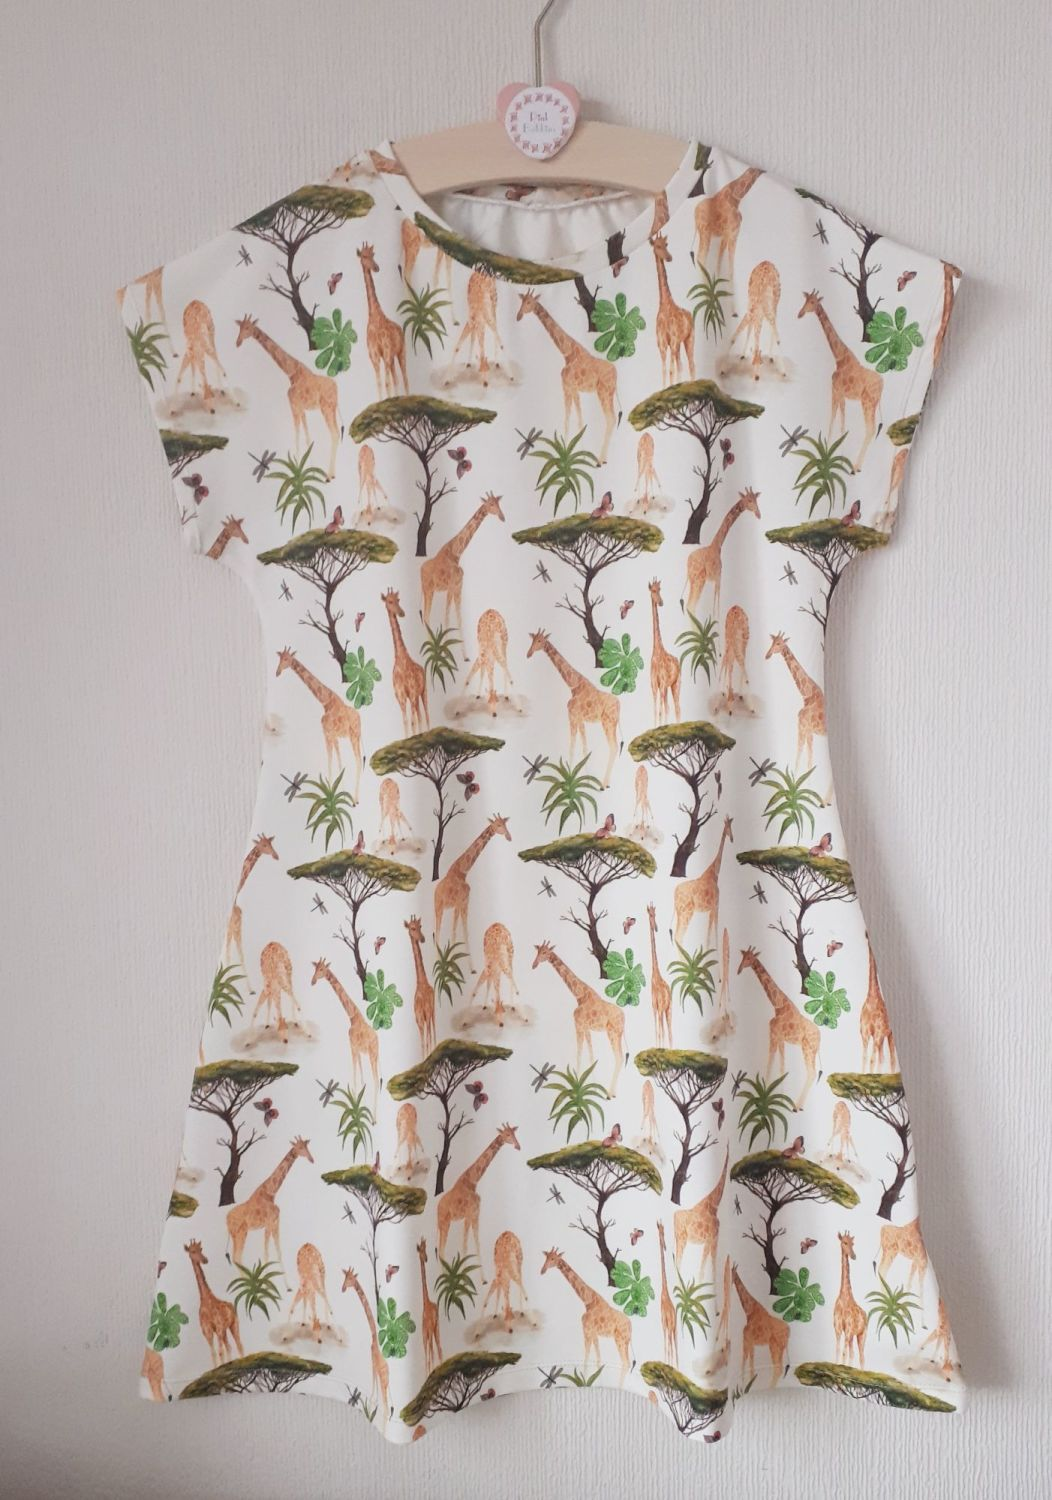 Giraffe comfy dress - made to order